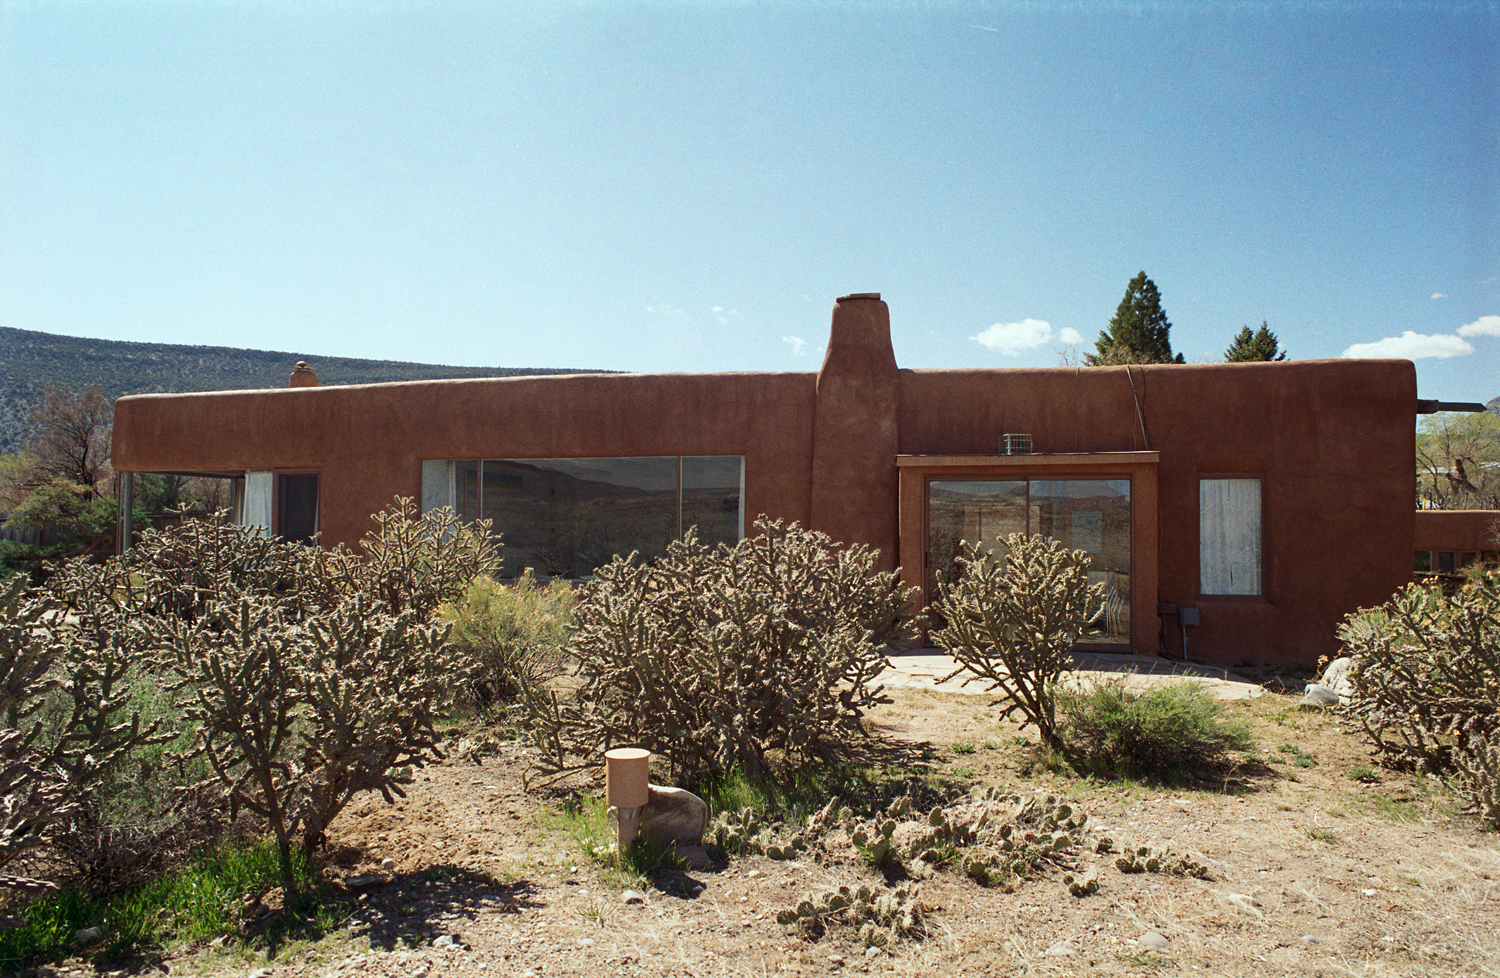 Georgia O'Keefe's home in Abiquiu, New Mexico.  Photo by Herb Lotz, 2007,  © Georgia O'Keefe Museum.